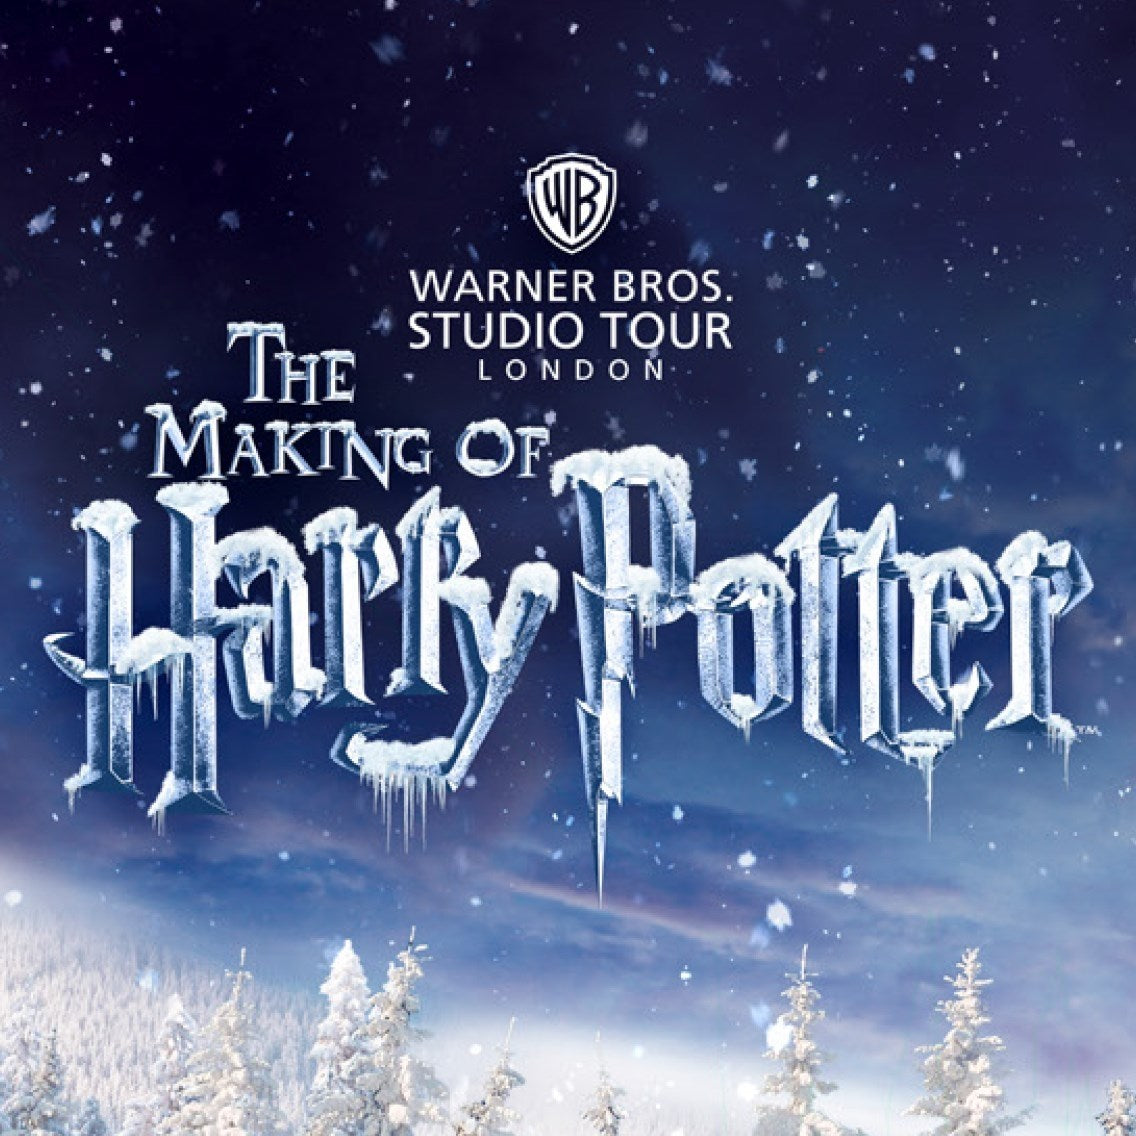 Warner Bros. Studio Tour From London - The Making of Harry Potter